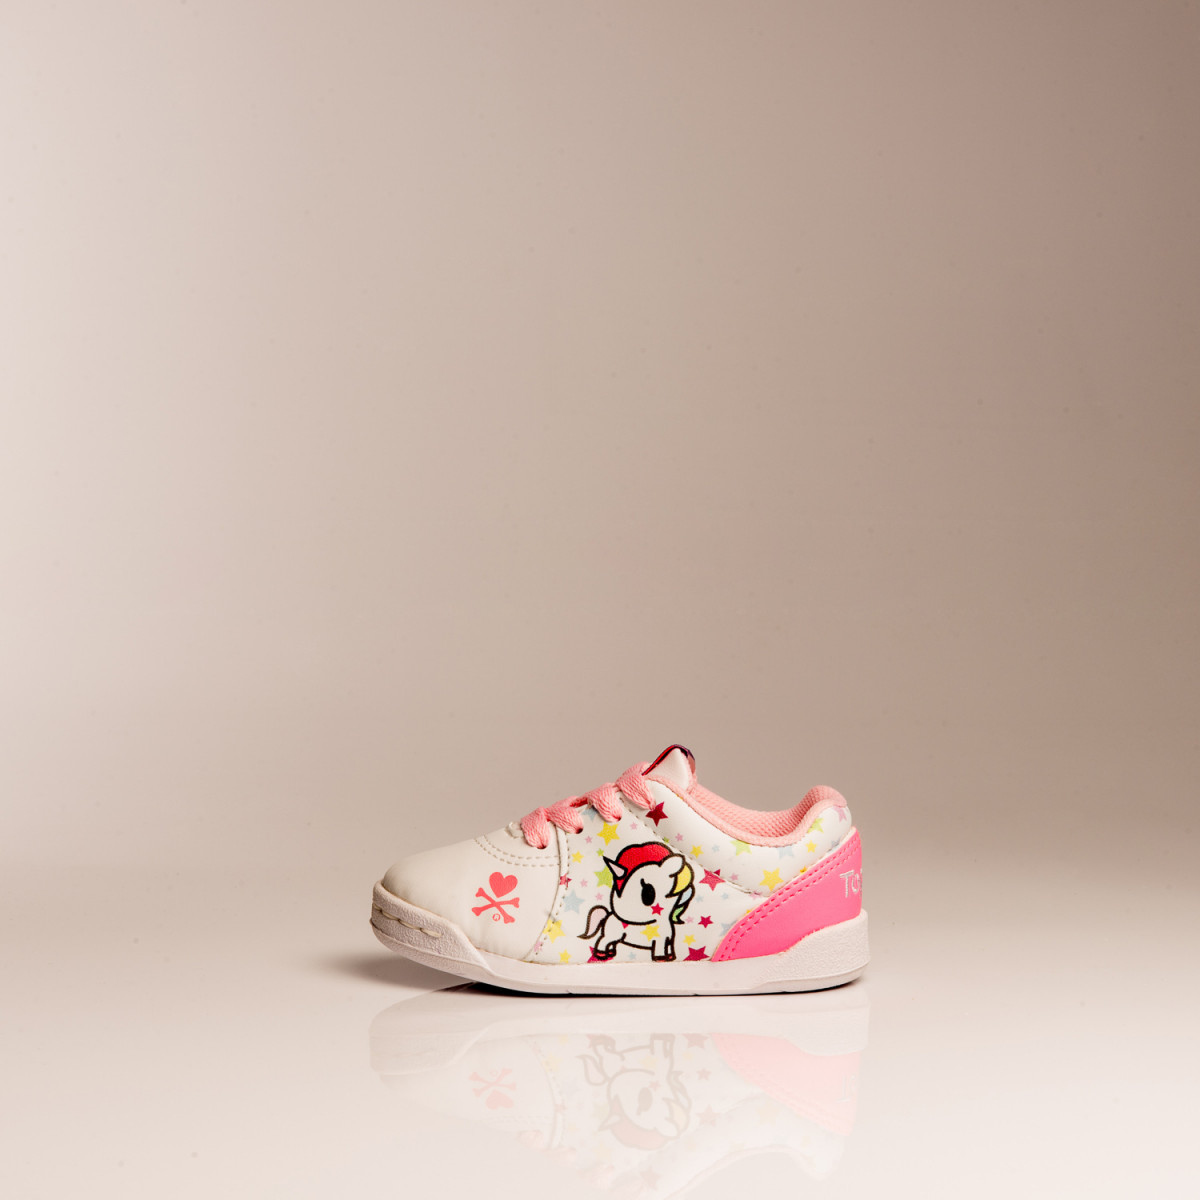 Zapatillas Topper Tokidoki Aero Bas Low Bb Stellina